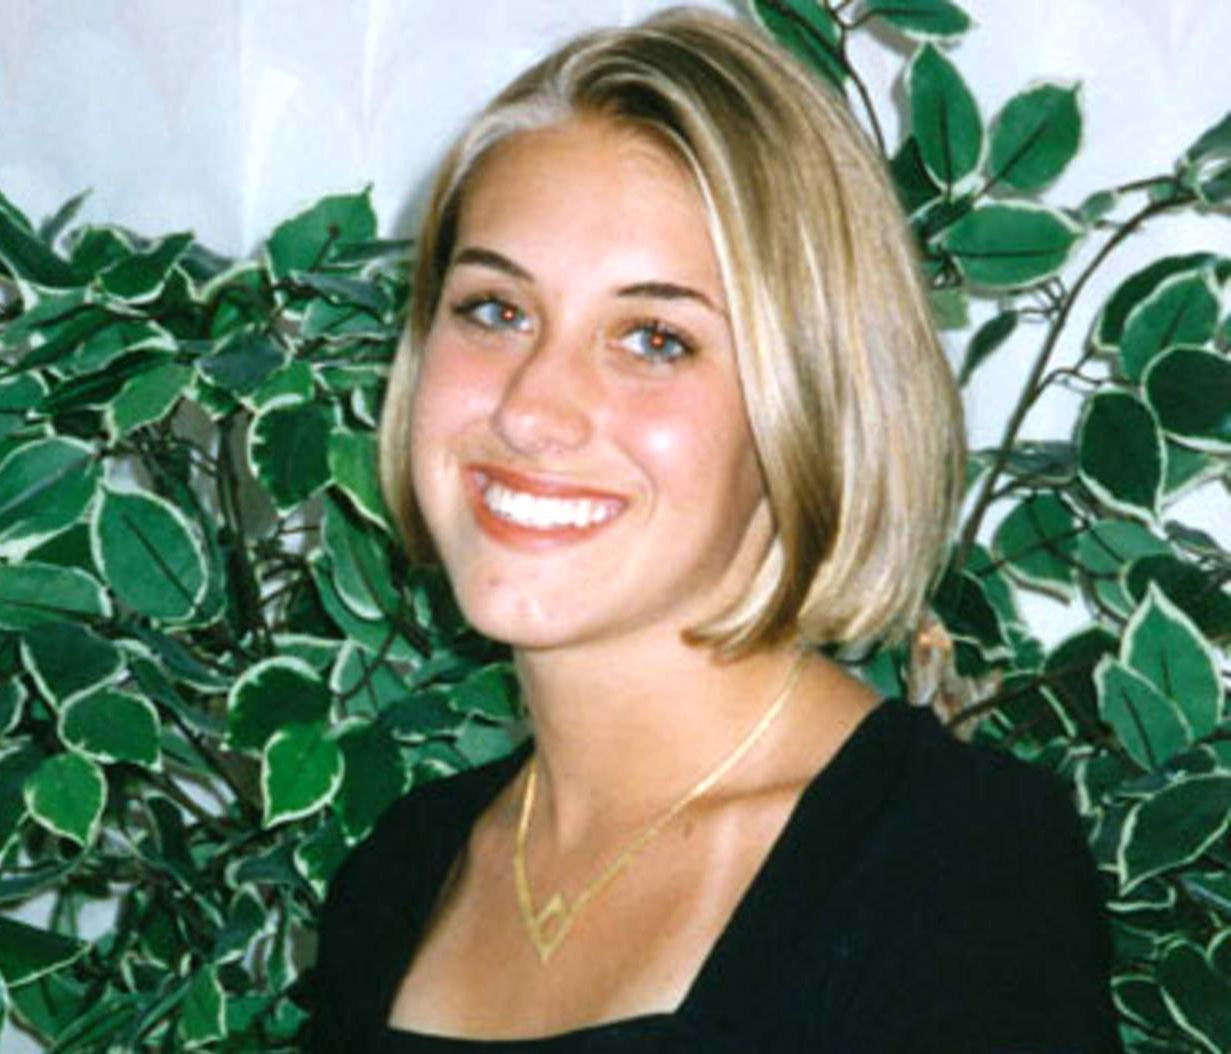 The unsolved disappearance of Jennifer Kesse 4